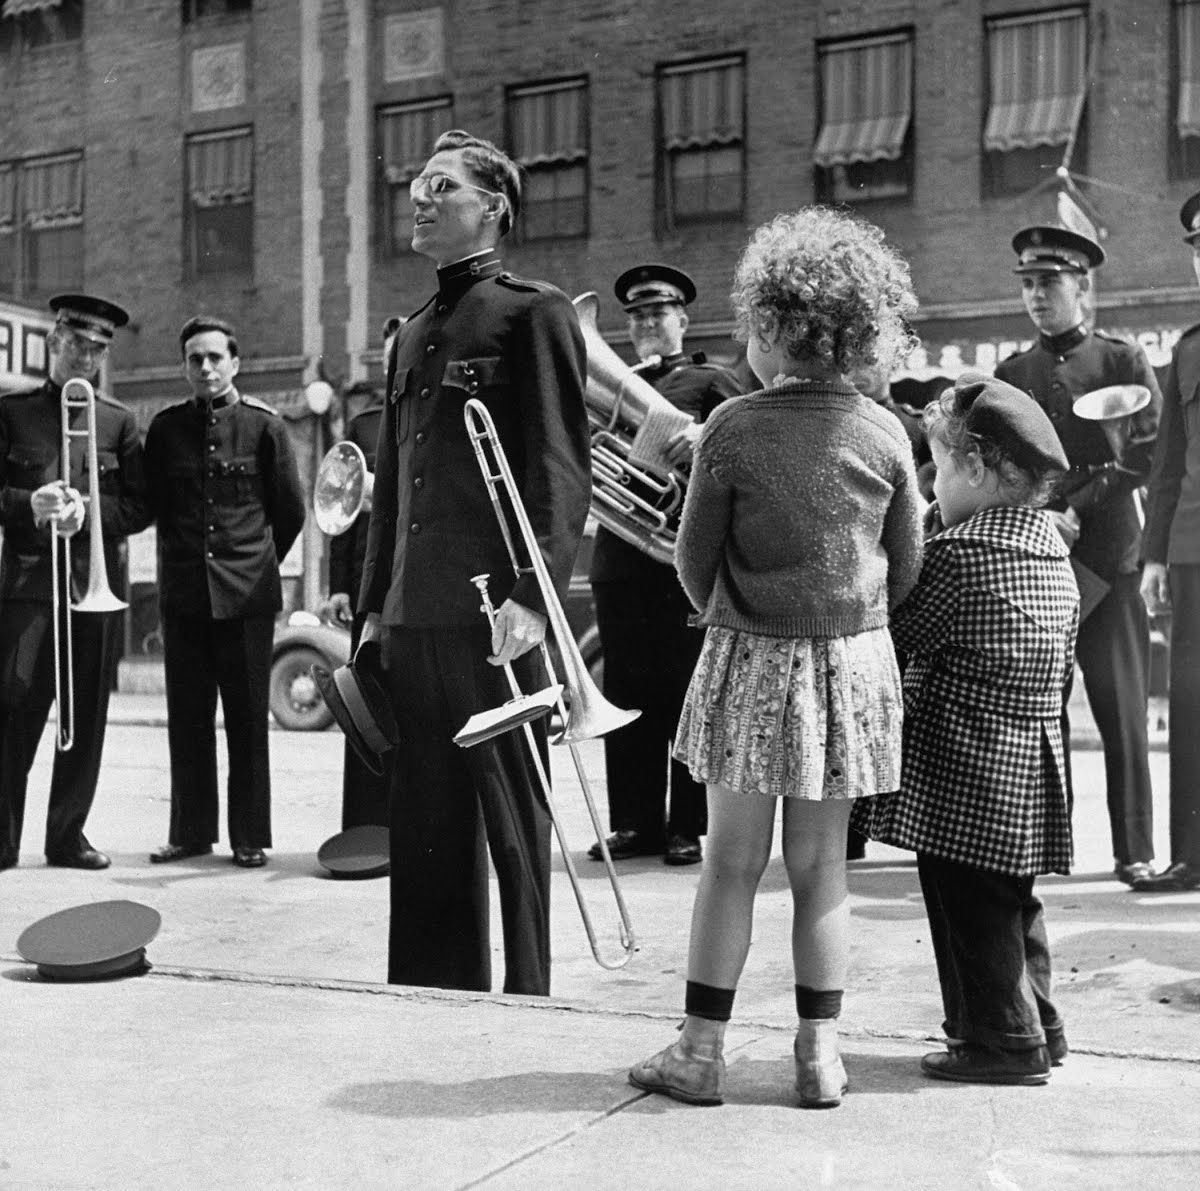 The Salvation Army band playing their instruments on the city street